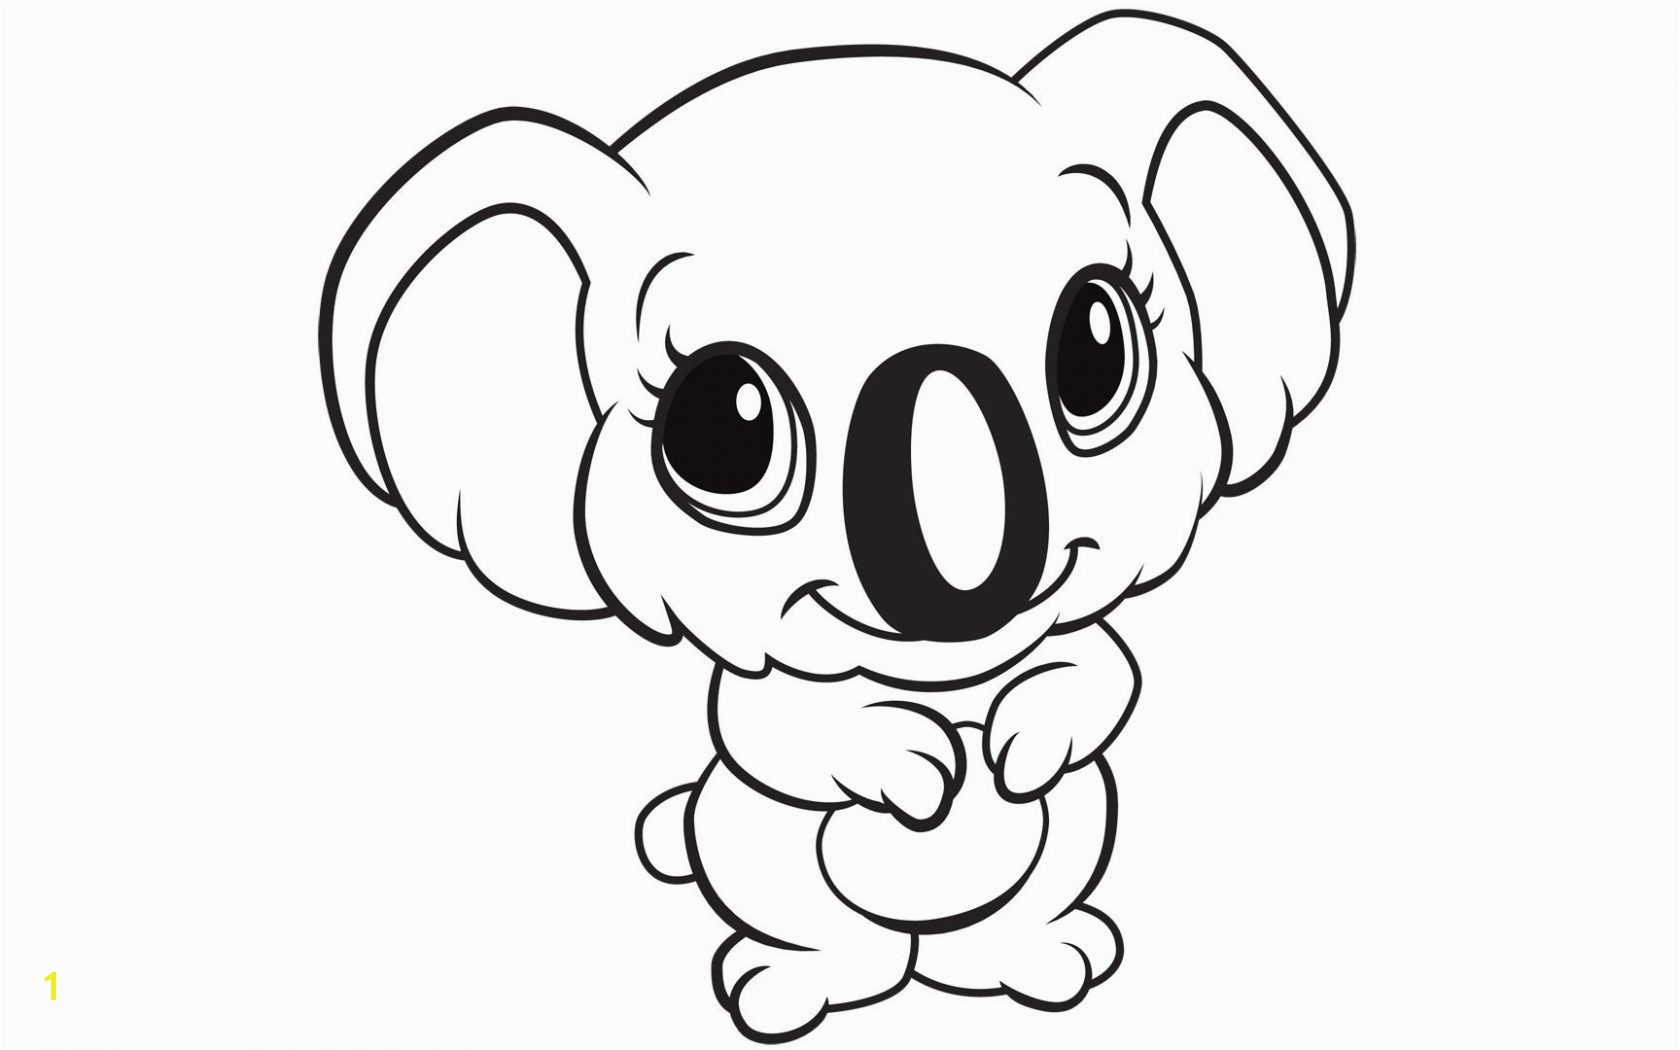 petitive Baby Animals Coloring Pages Best Cute Cartoon Gallery Printable Animal 7